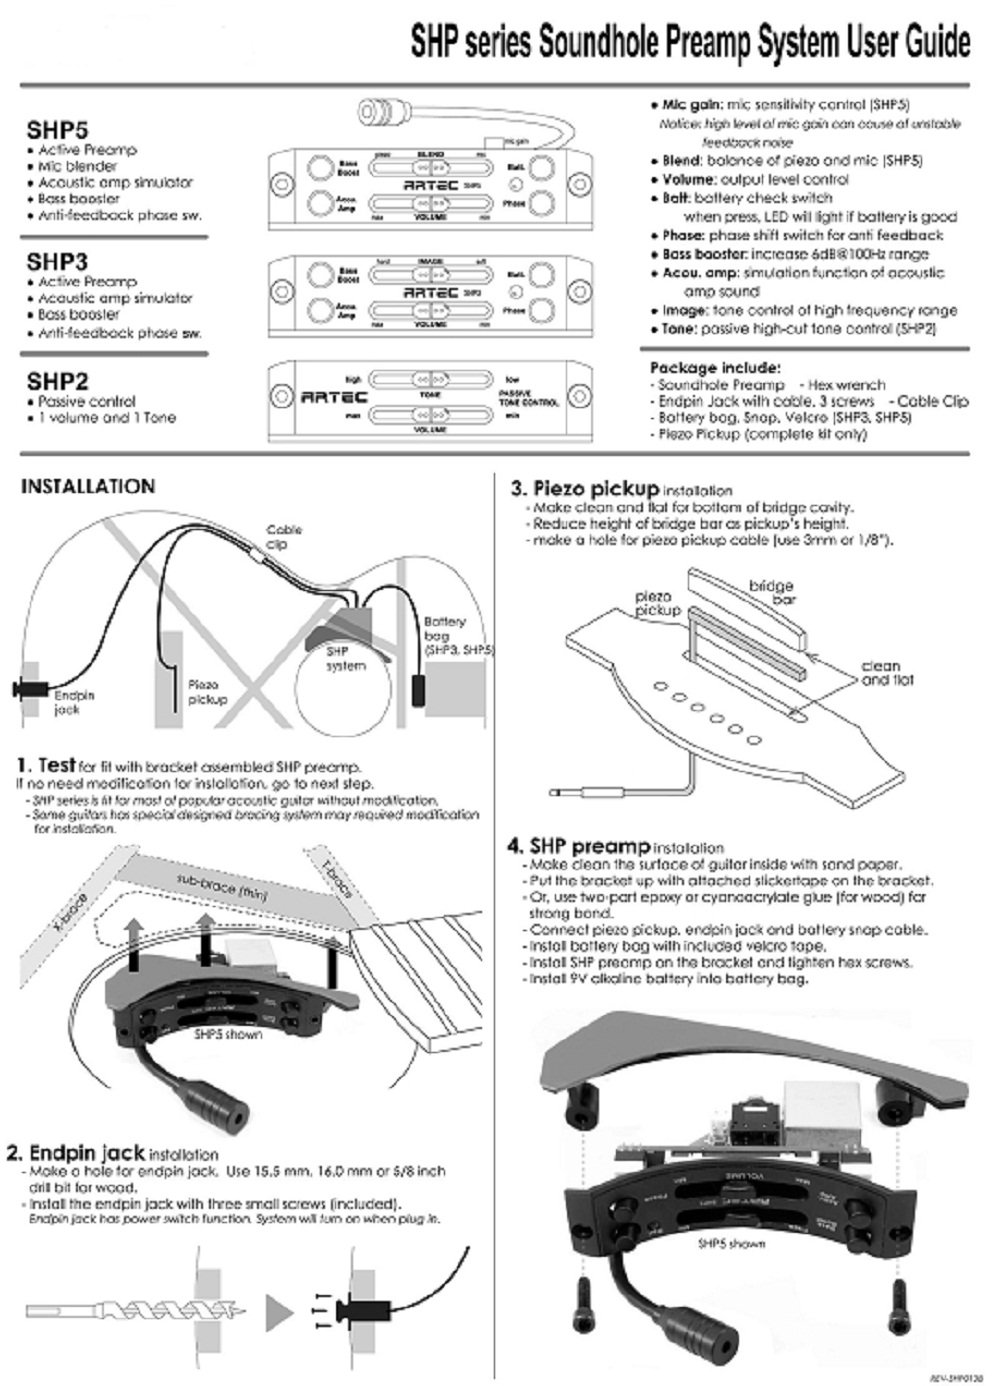 Endpin Jack Wiring Diagram For Trusted Diagrams Wire Center U2022 Phone Installation